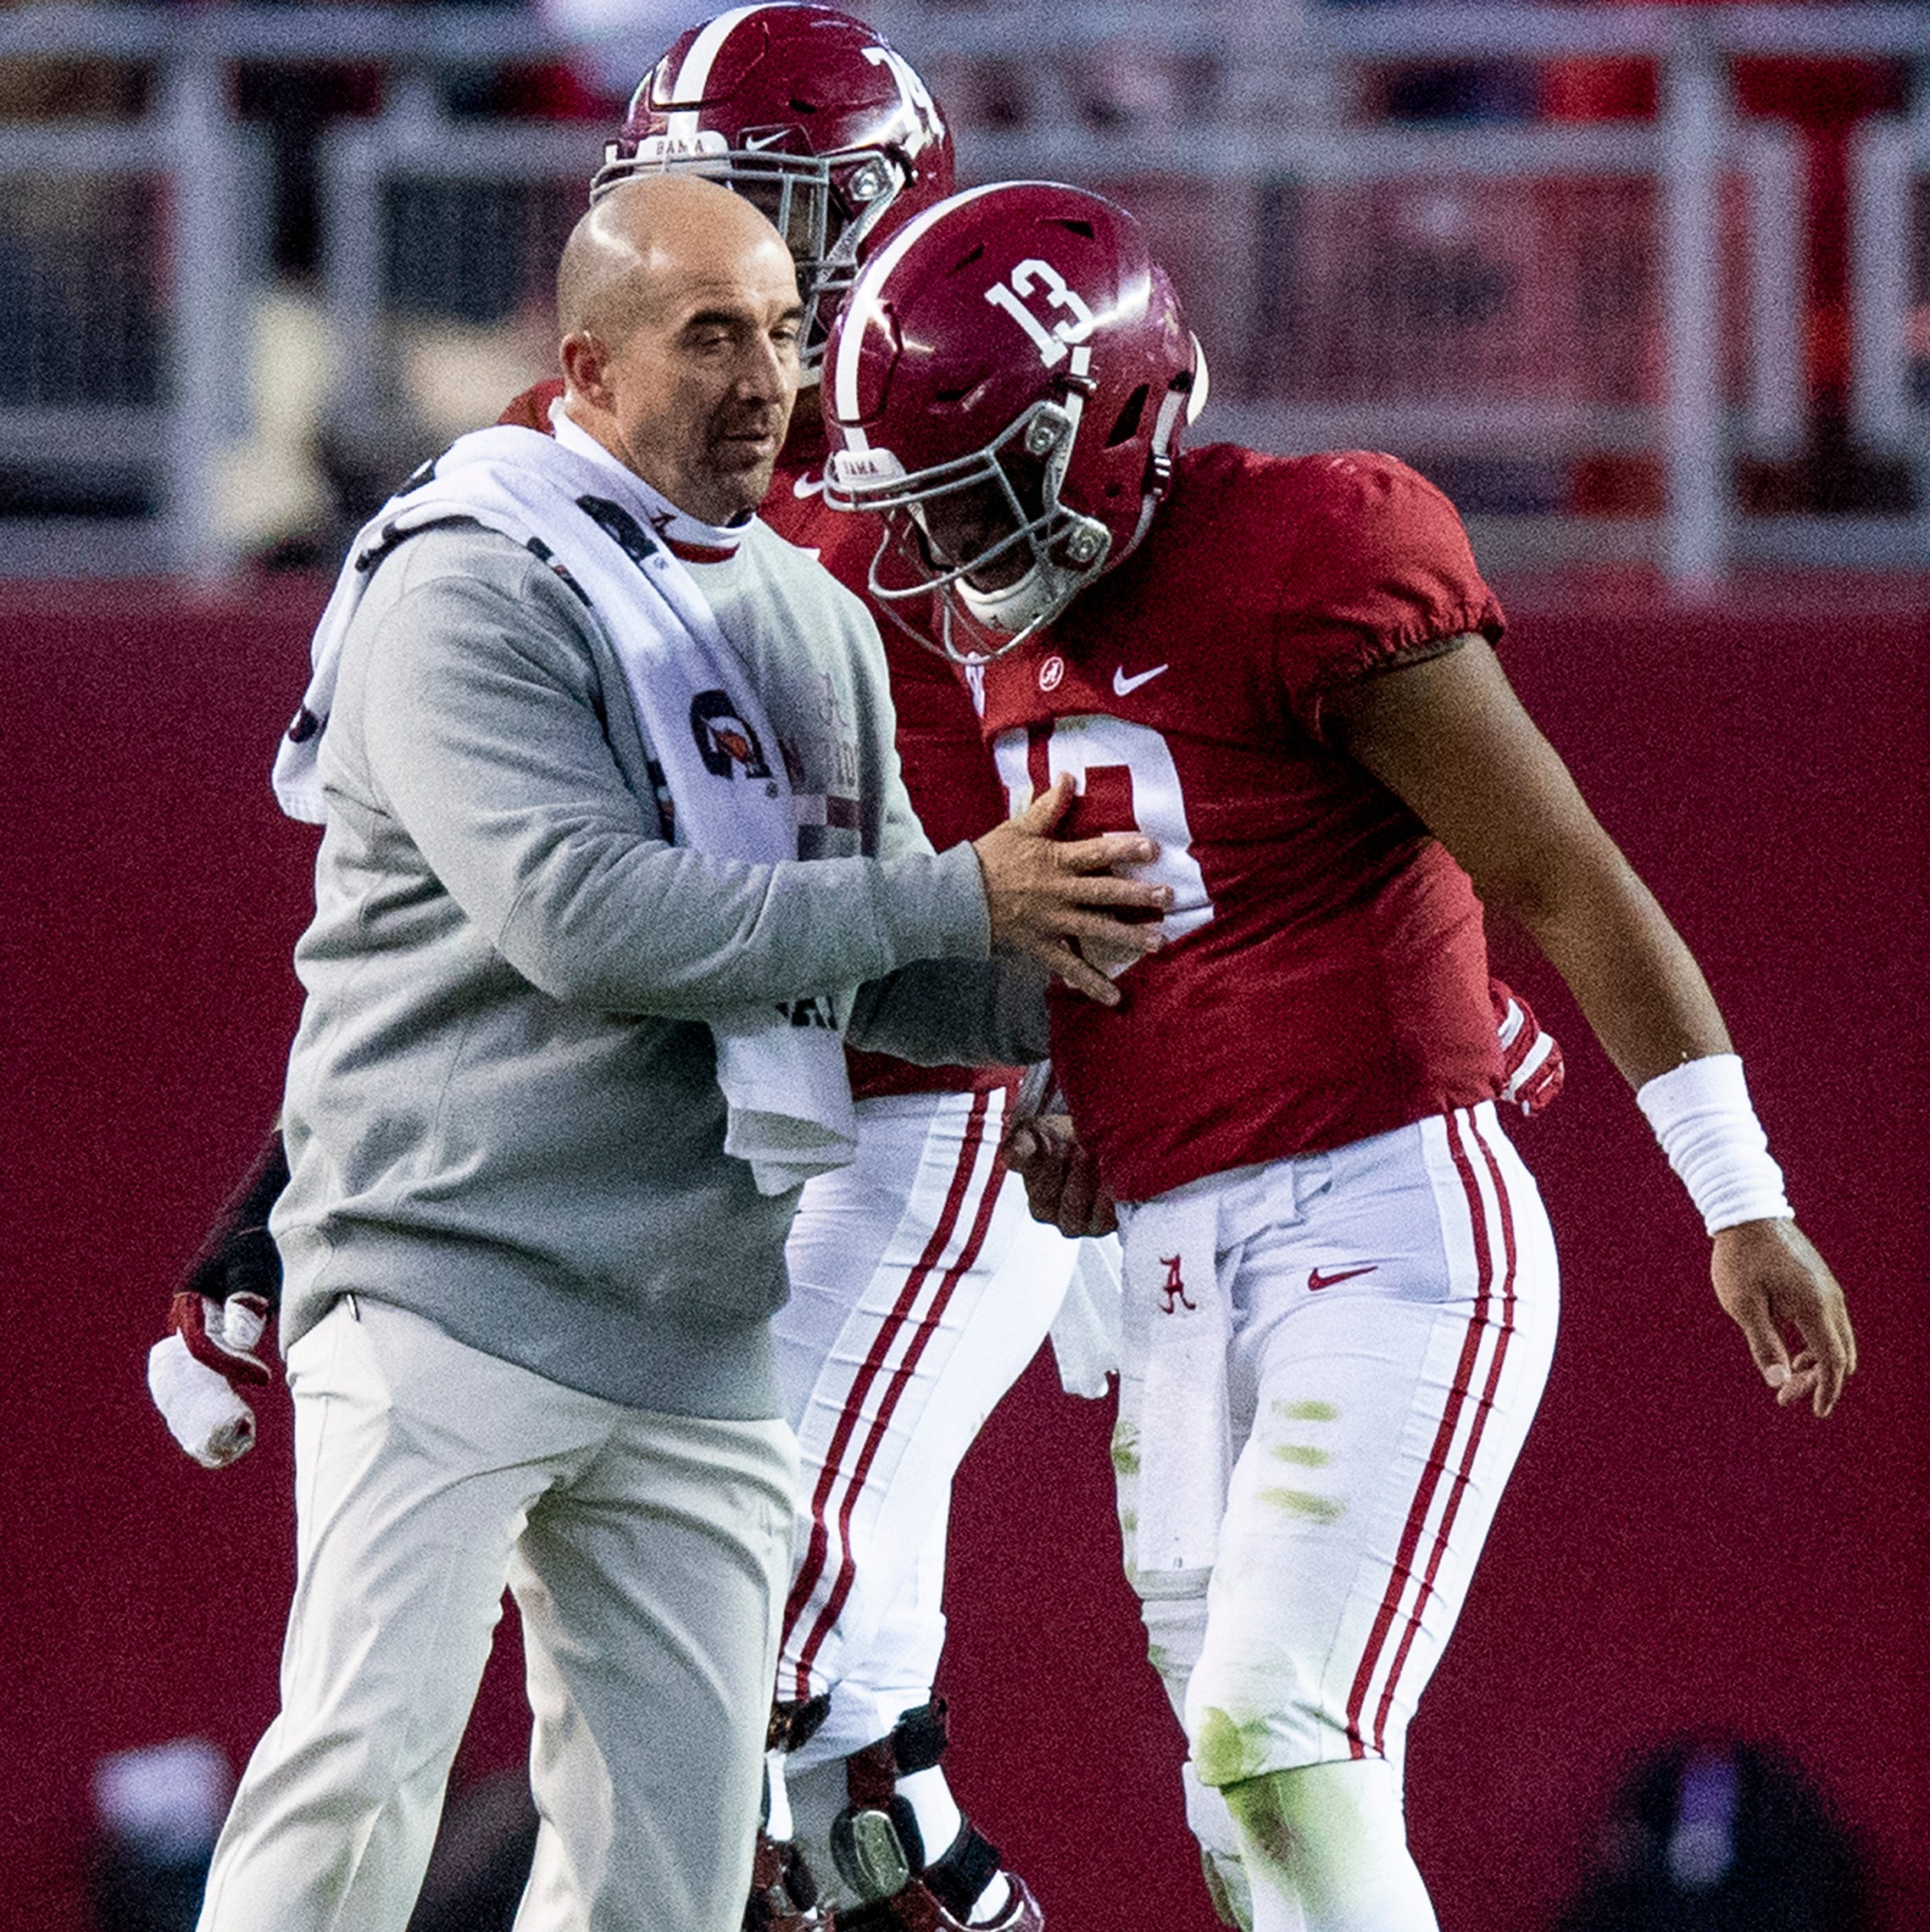 Alabama's Nick Saban has no intention to limit injured star QB Tagovailoa vs. The Citadel